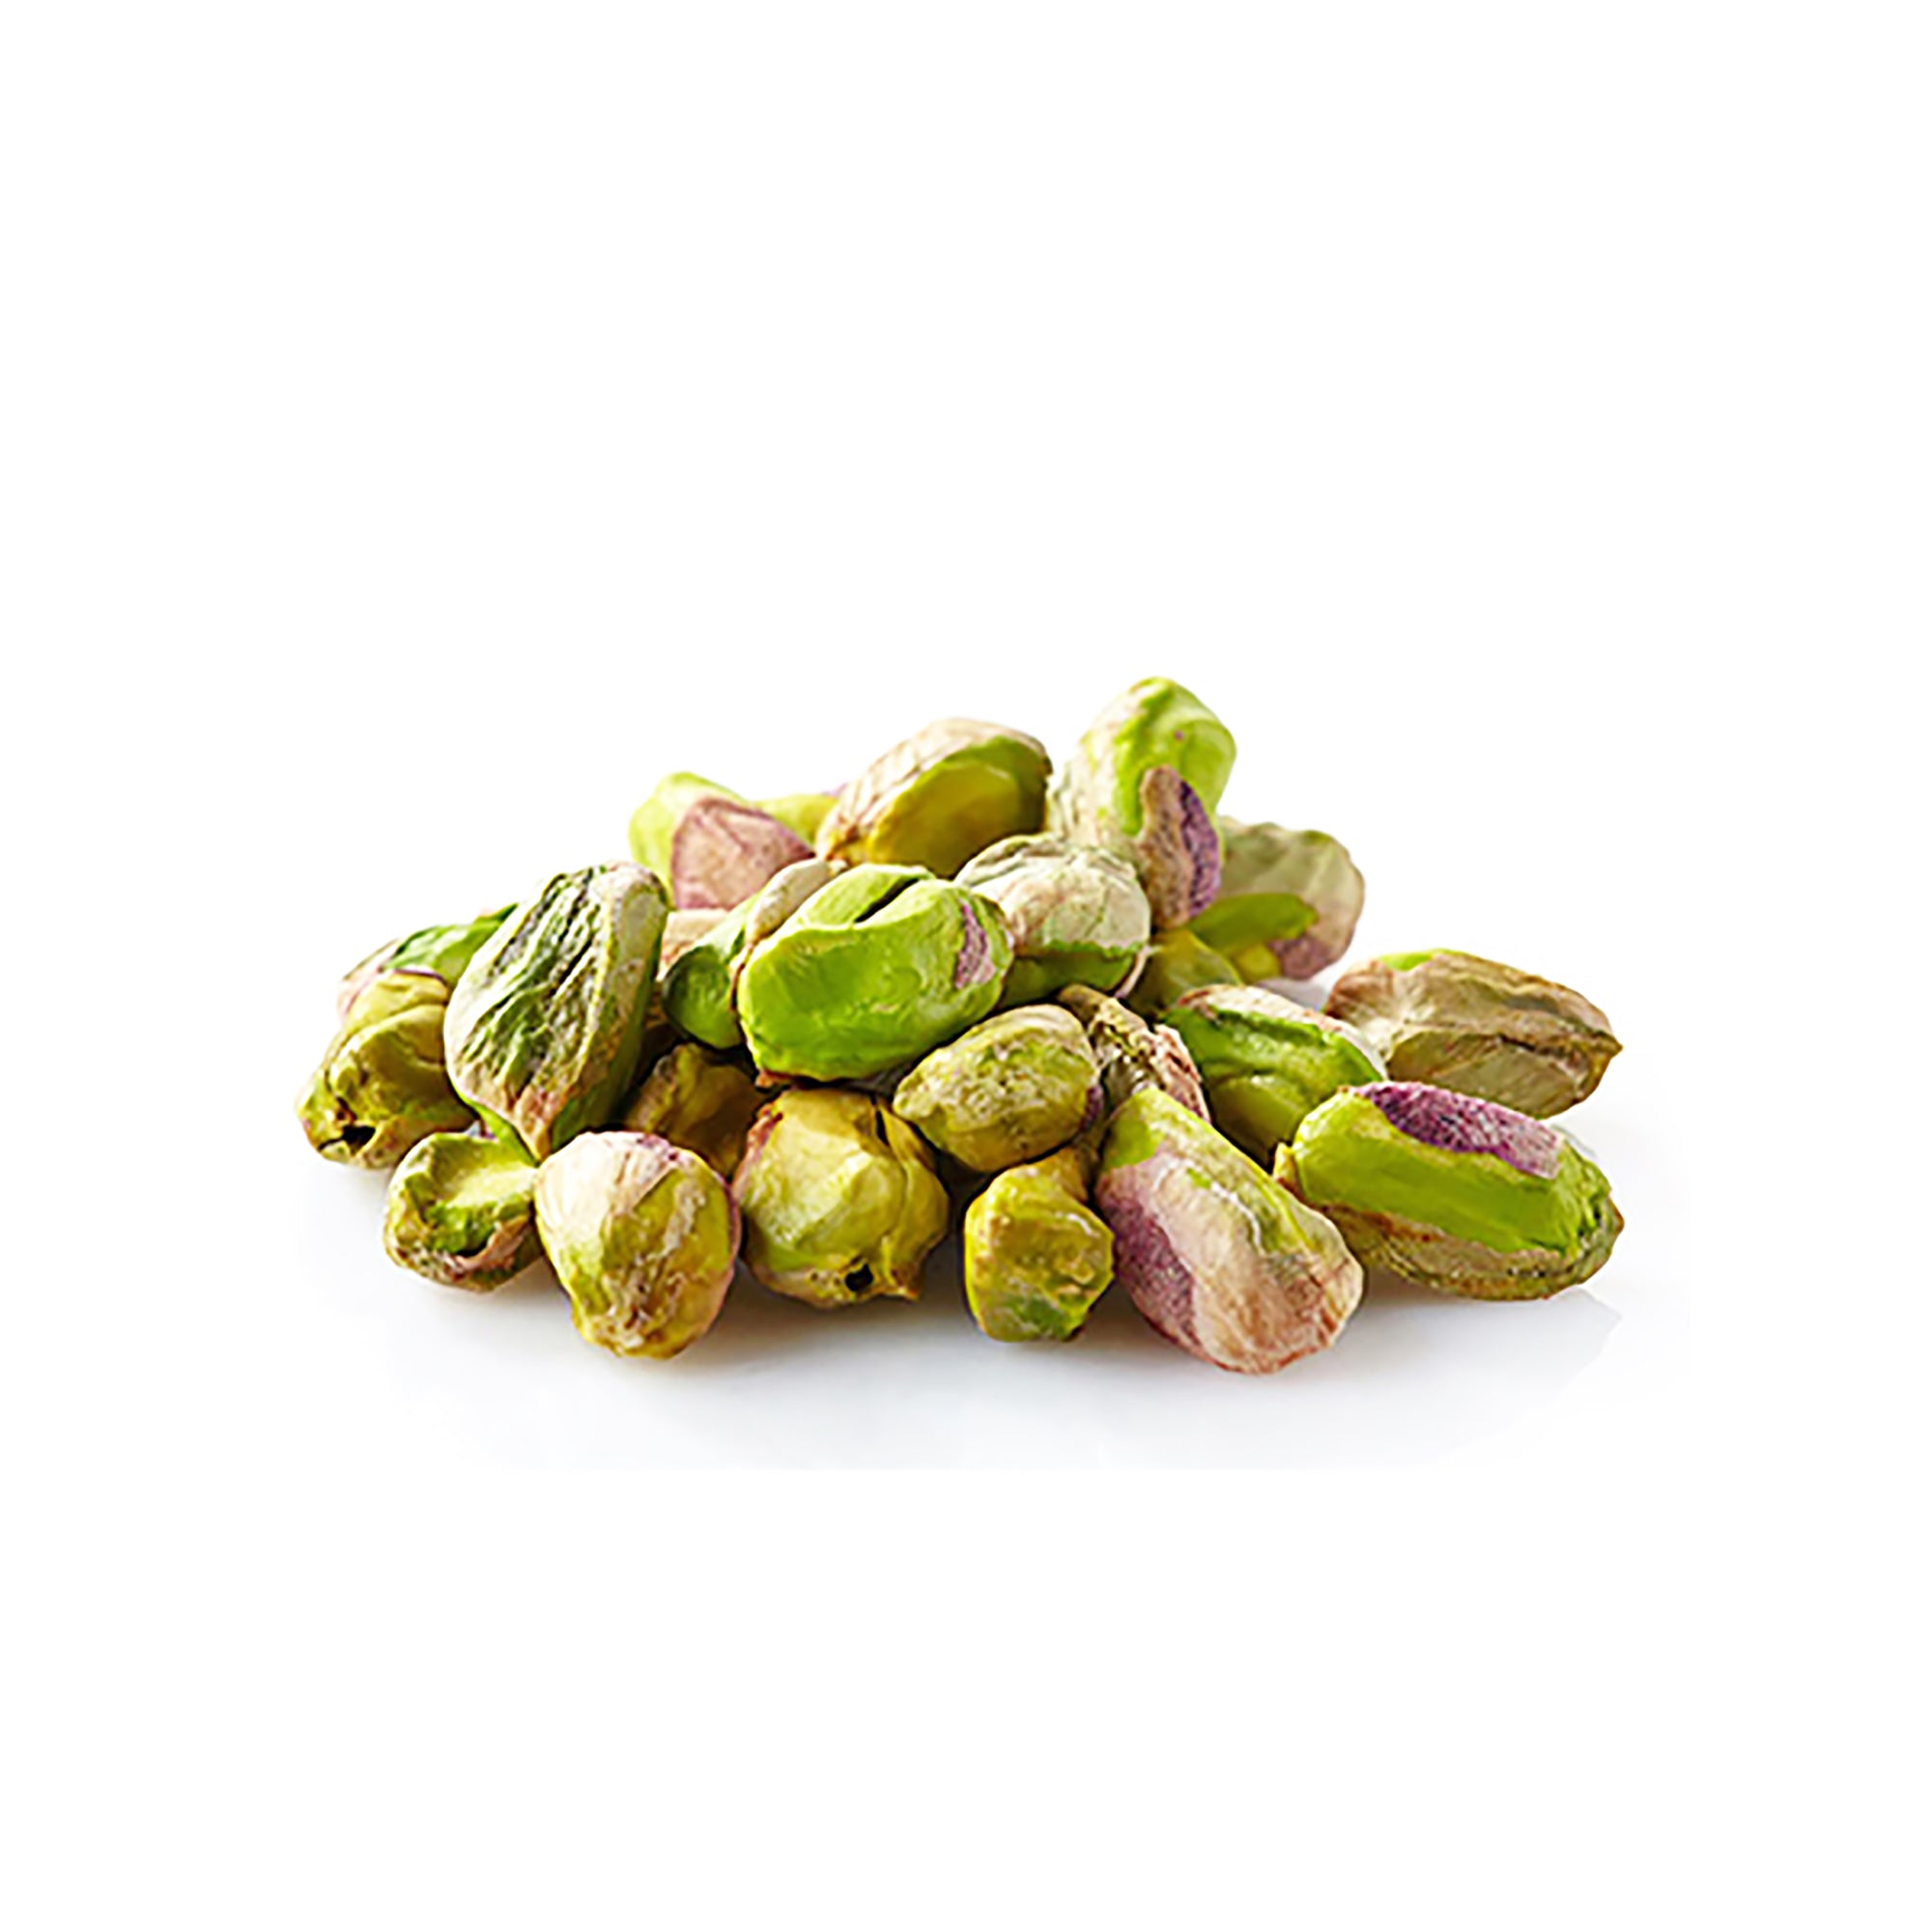 Roasted, Salted & Shelled Pistachios 6 oz.